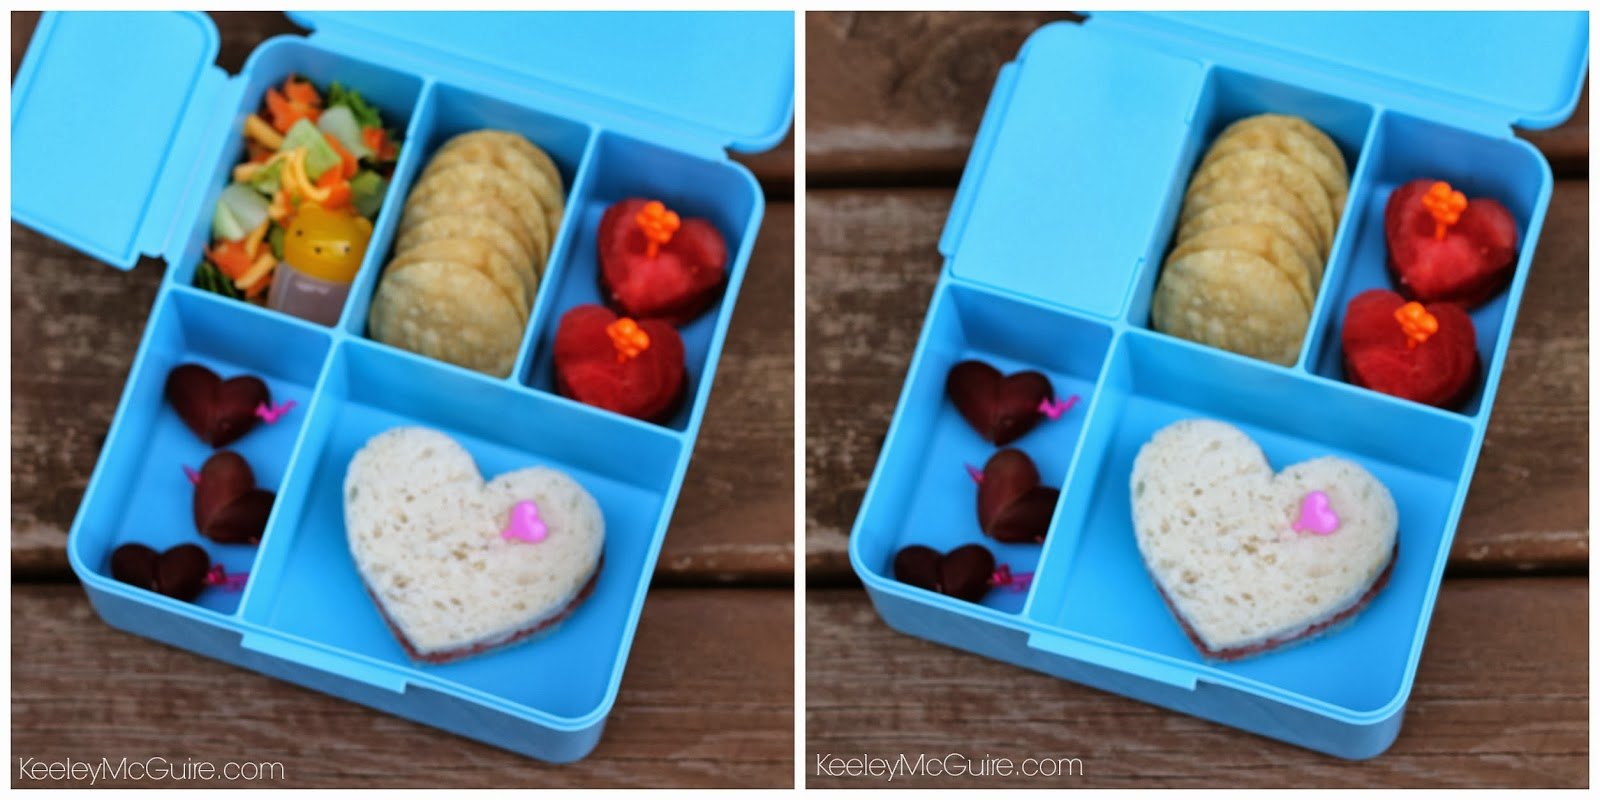 Gluten Free Amp Allergy Friendly Lunch Made Easy Over 25